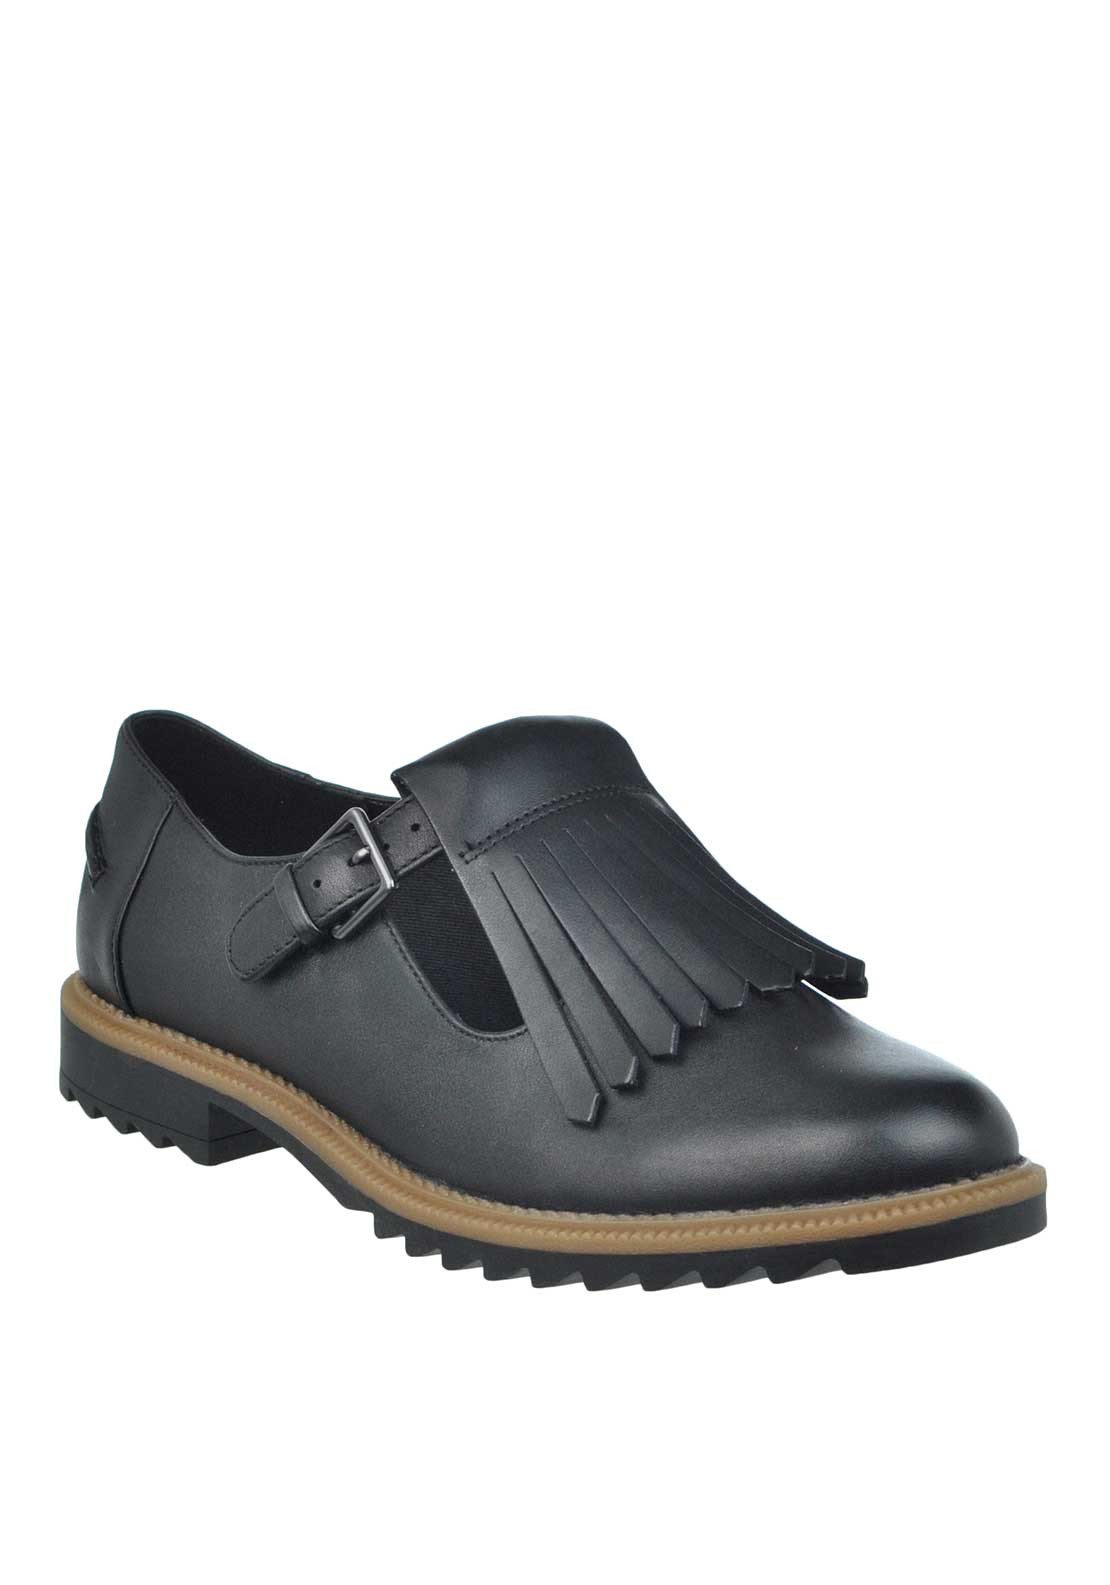 Clarks Griffin Mia Patent Leather Fringed Buckled Shoe, Black